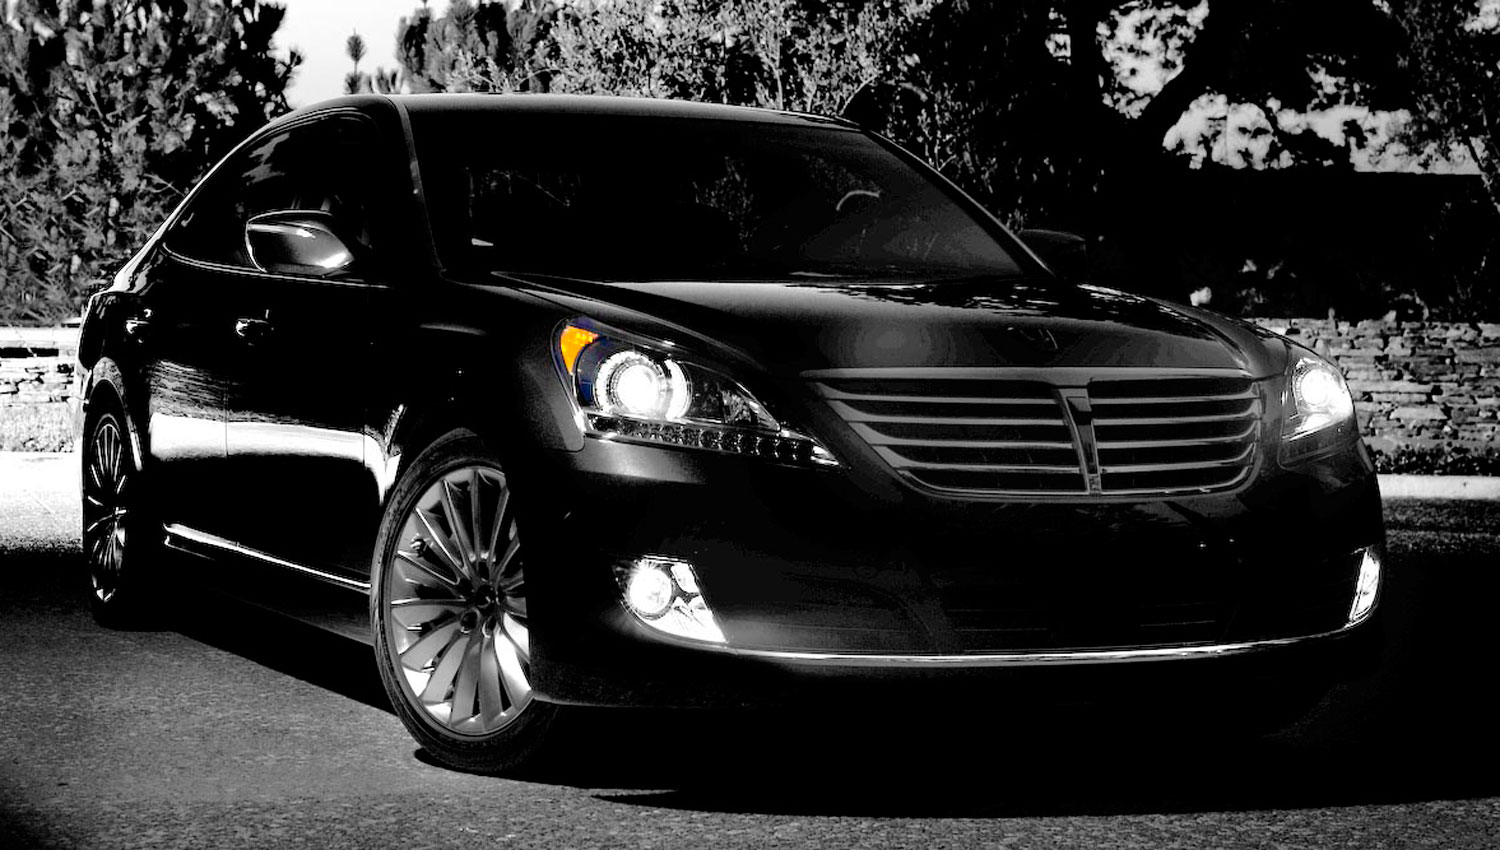 2014 Hyundai Equus teaser photo